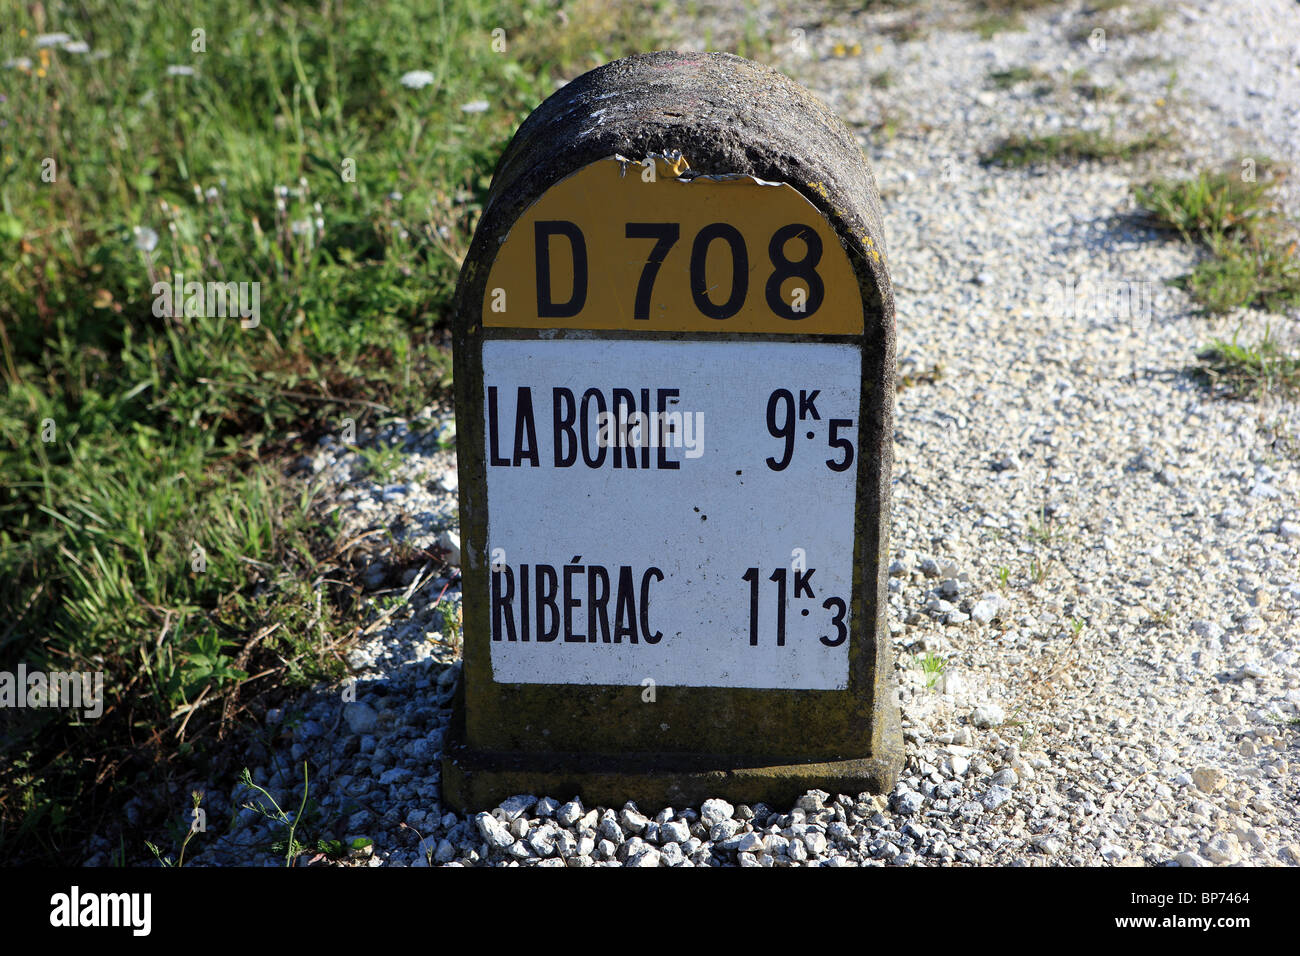 French road marker showing the distance to the French towns of La Borie and Riberac - Stock Image